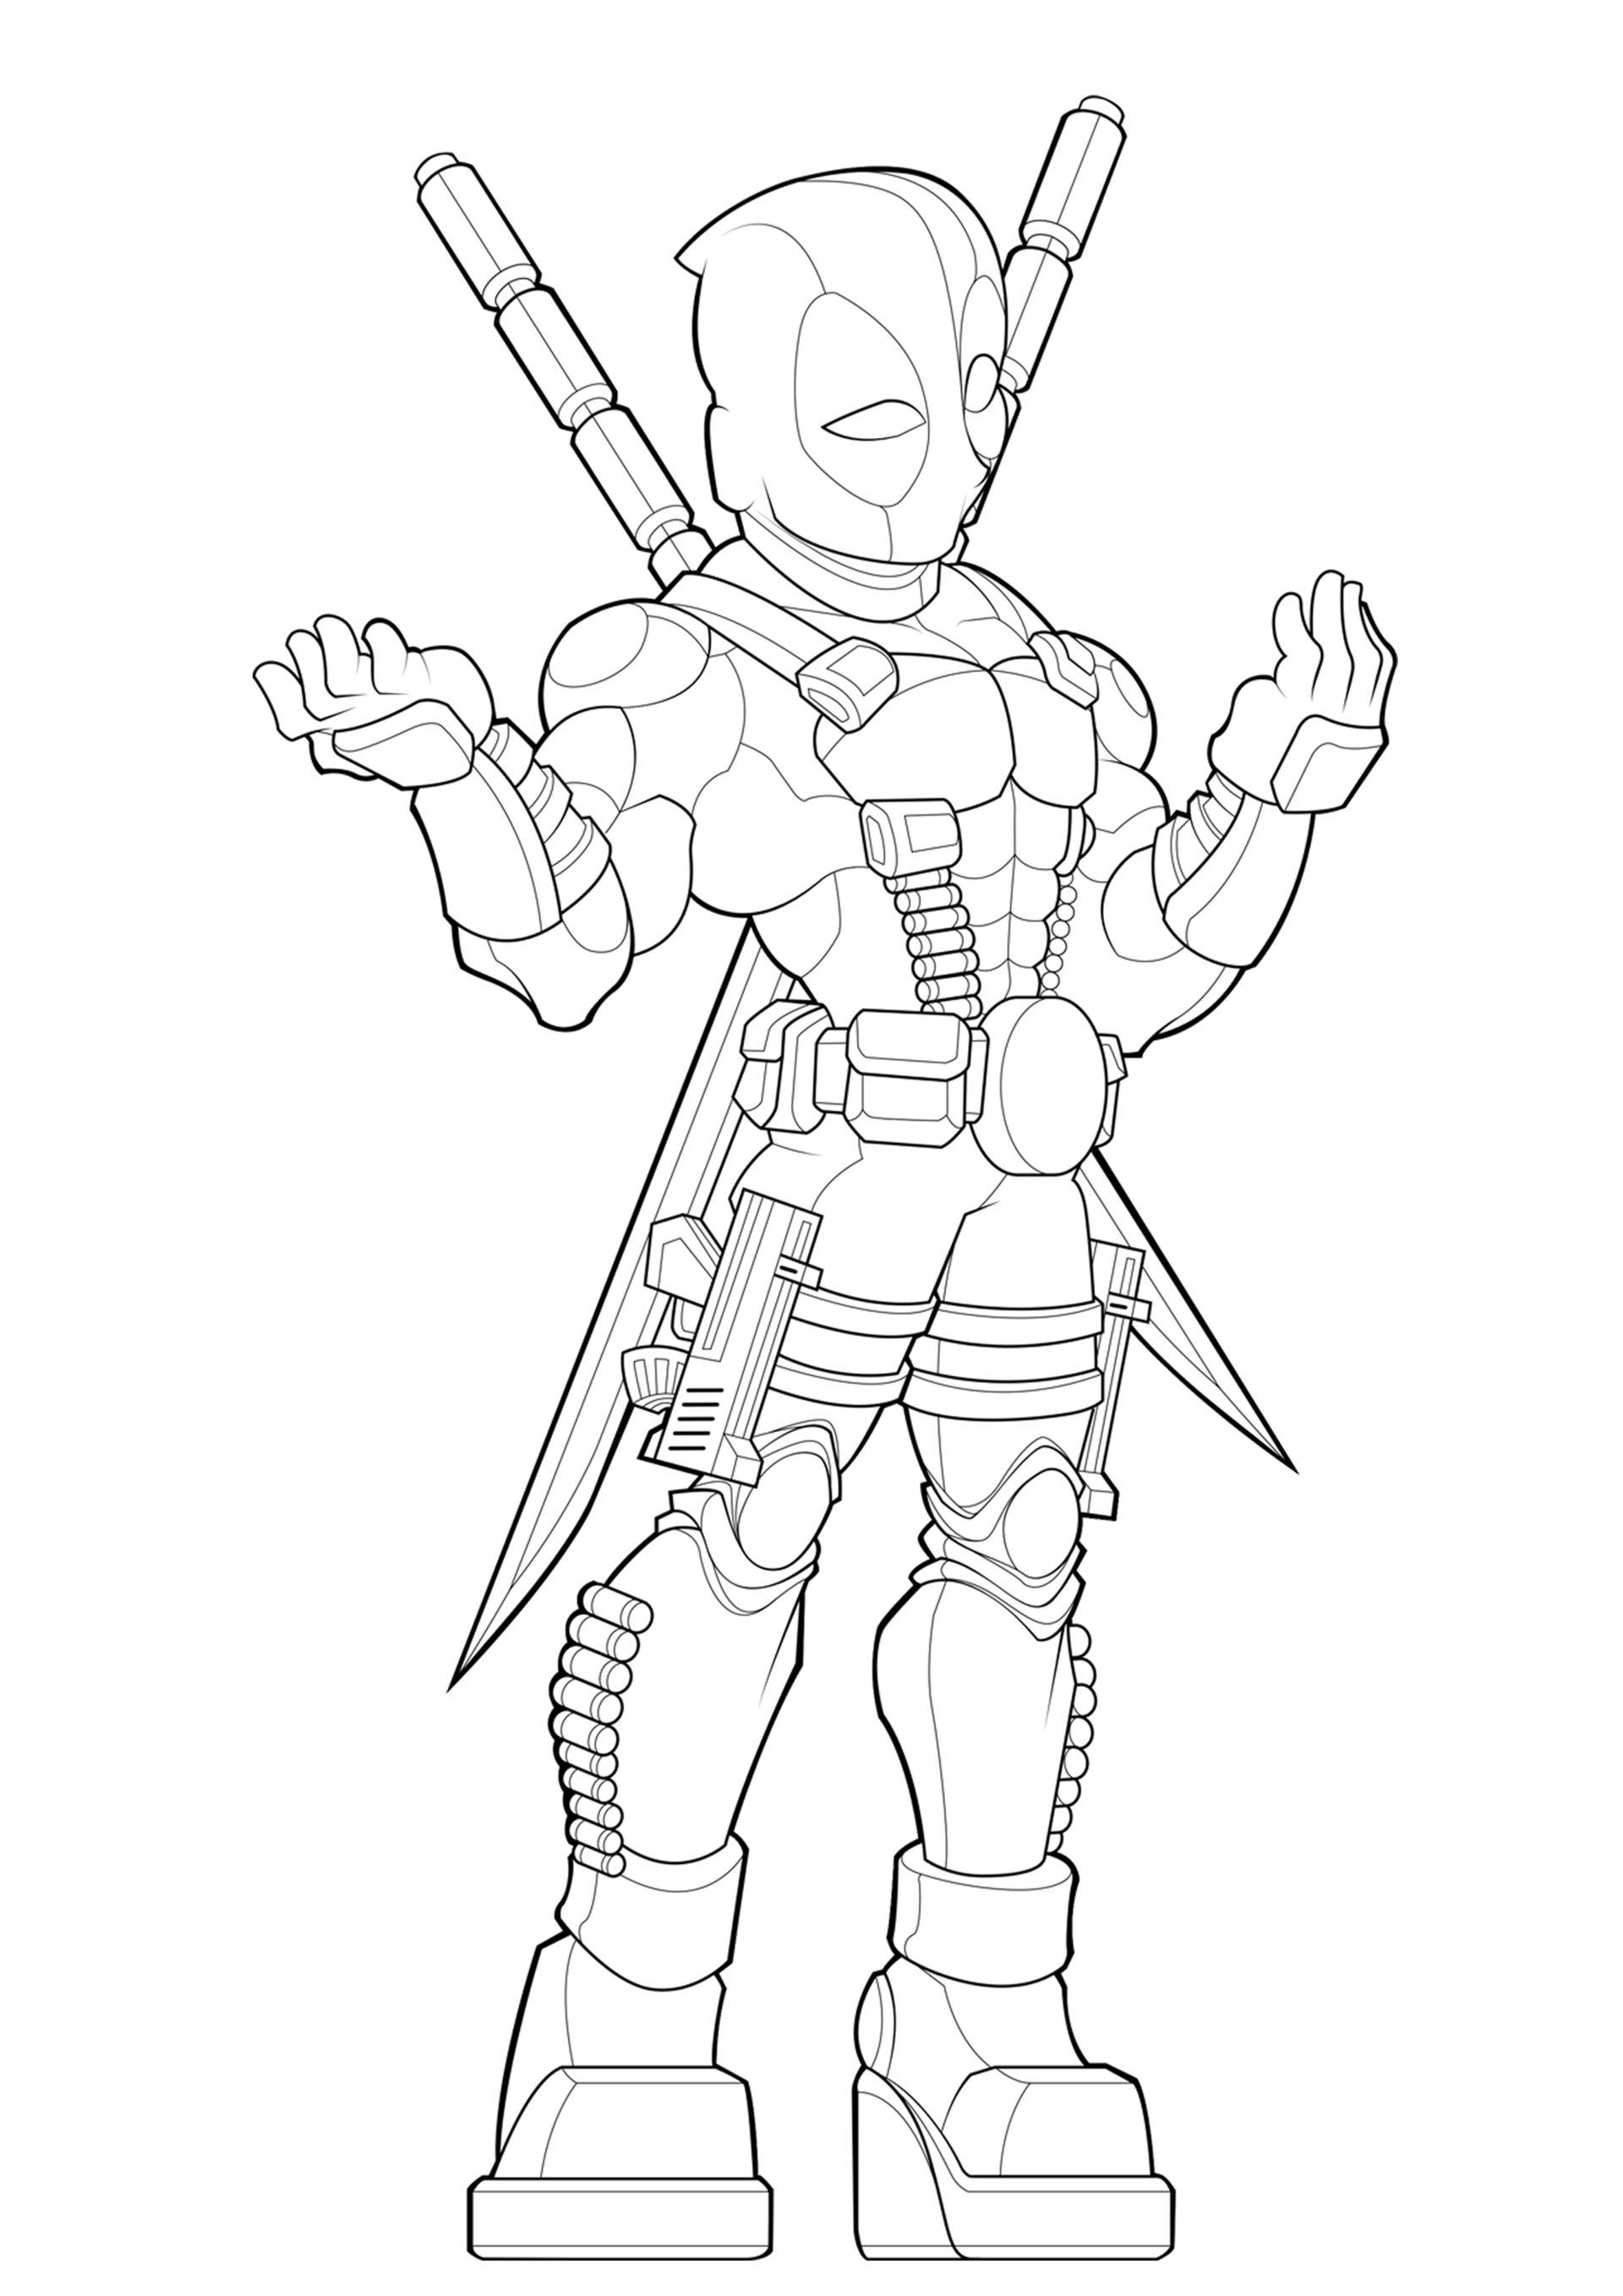 Deadpool Coloring Pages: Deadpool Coloring Pages Sketch Coloring Page